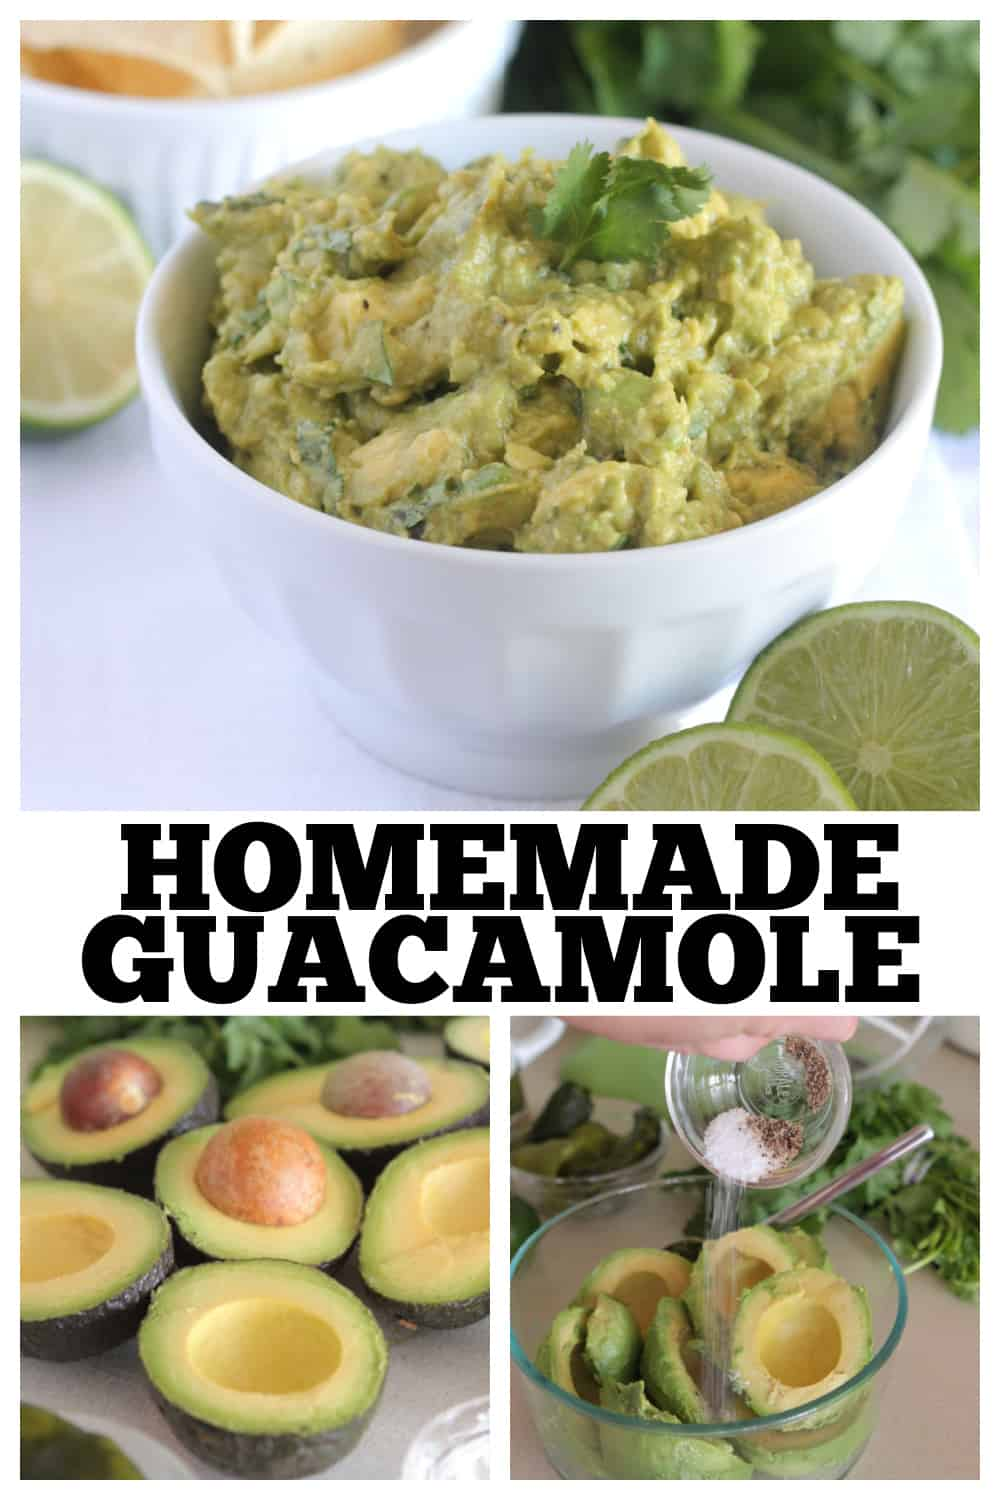 photo collage of homemade guacamole